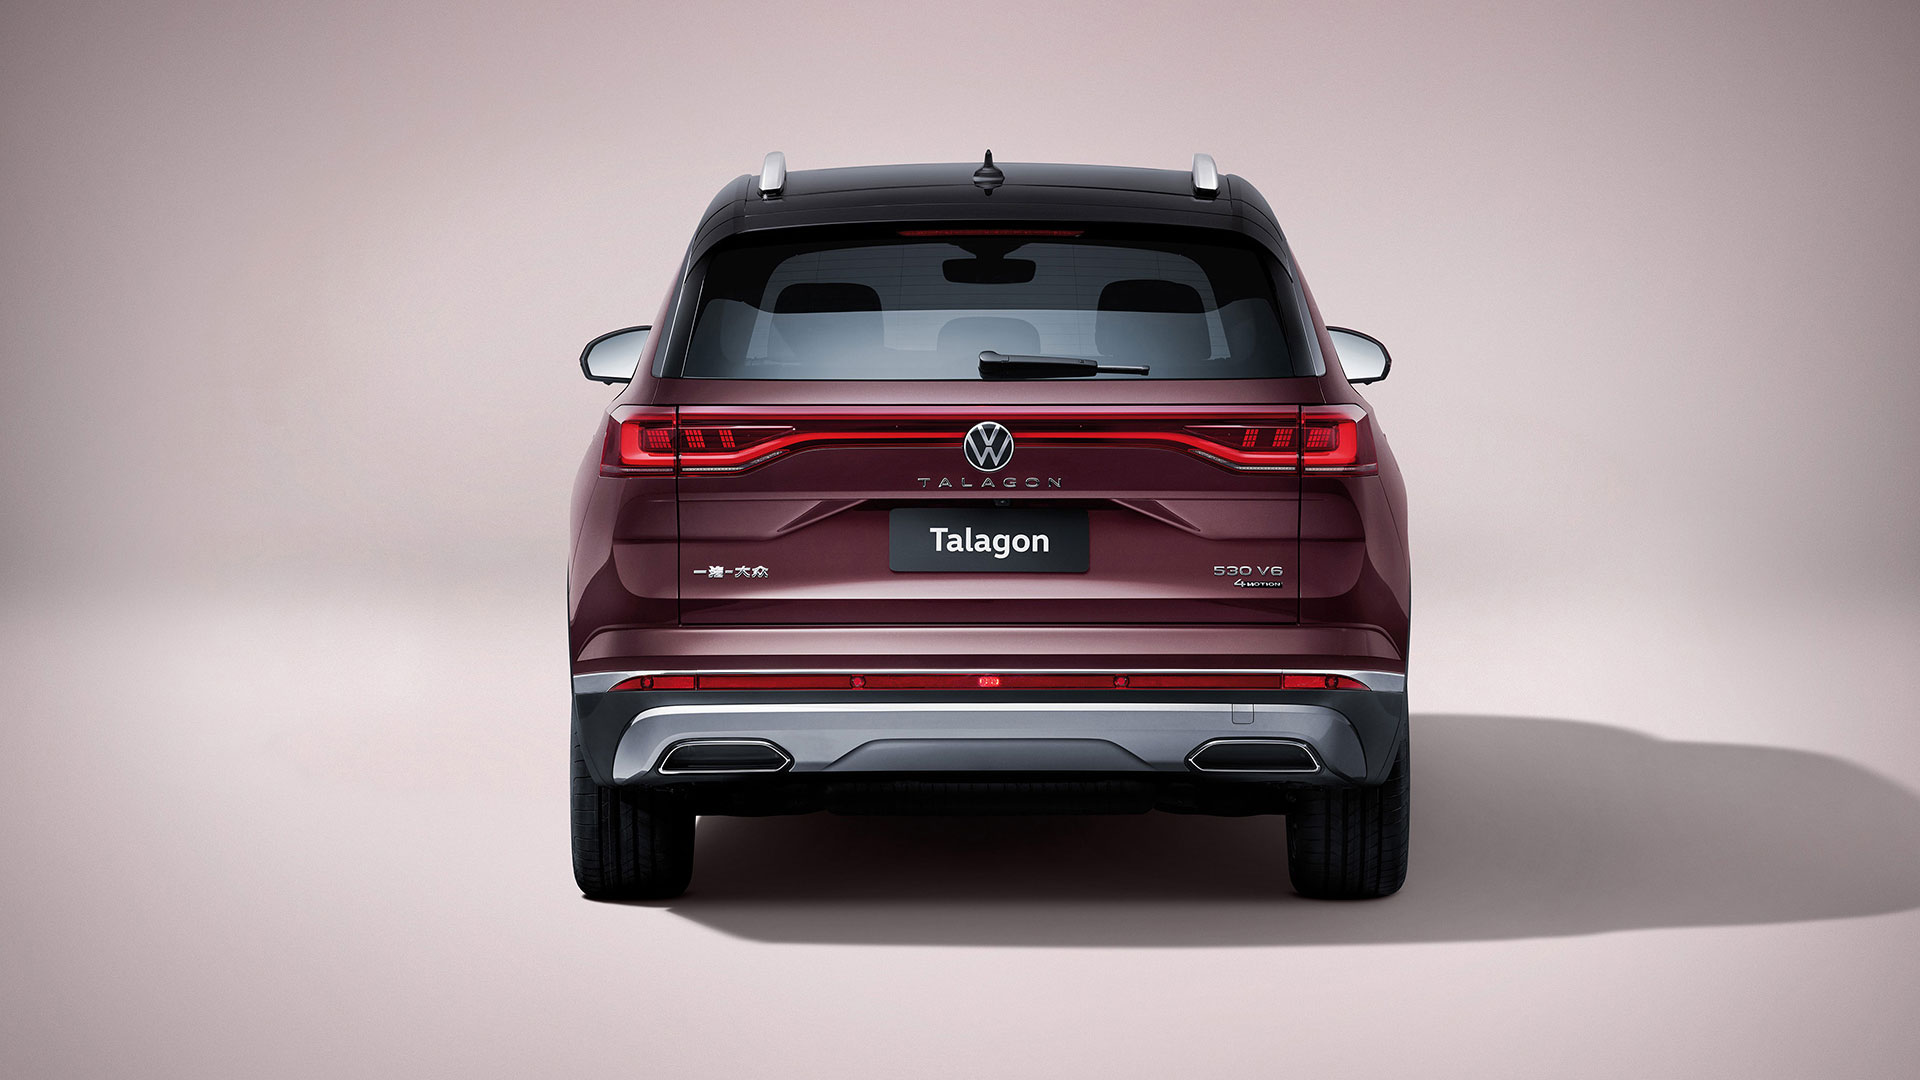 The Volkswagen Talagon Rear view